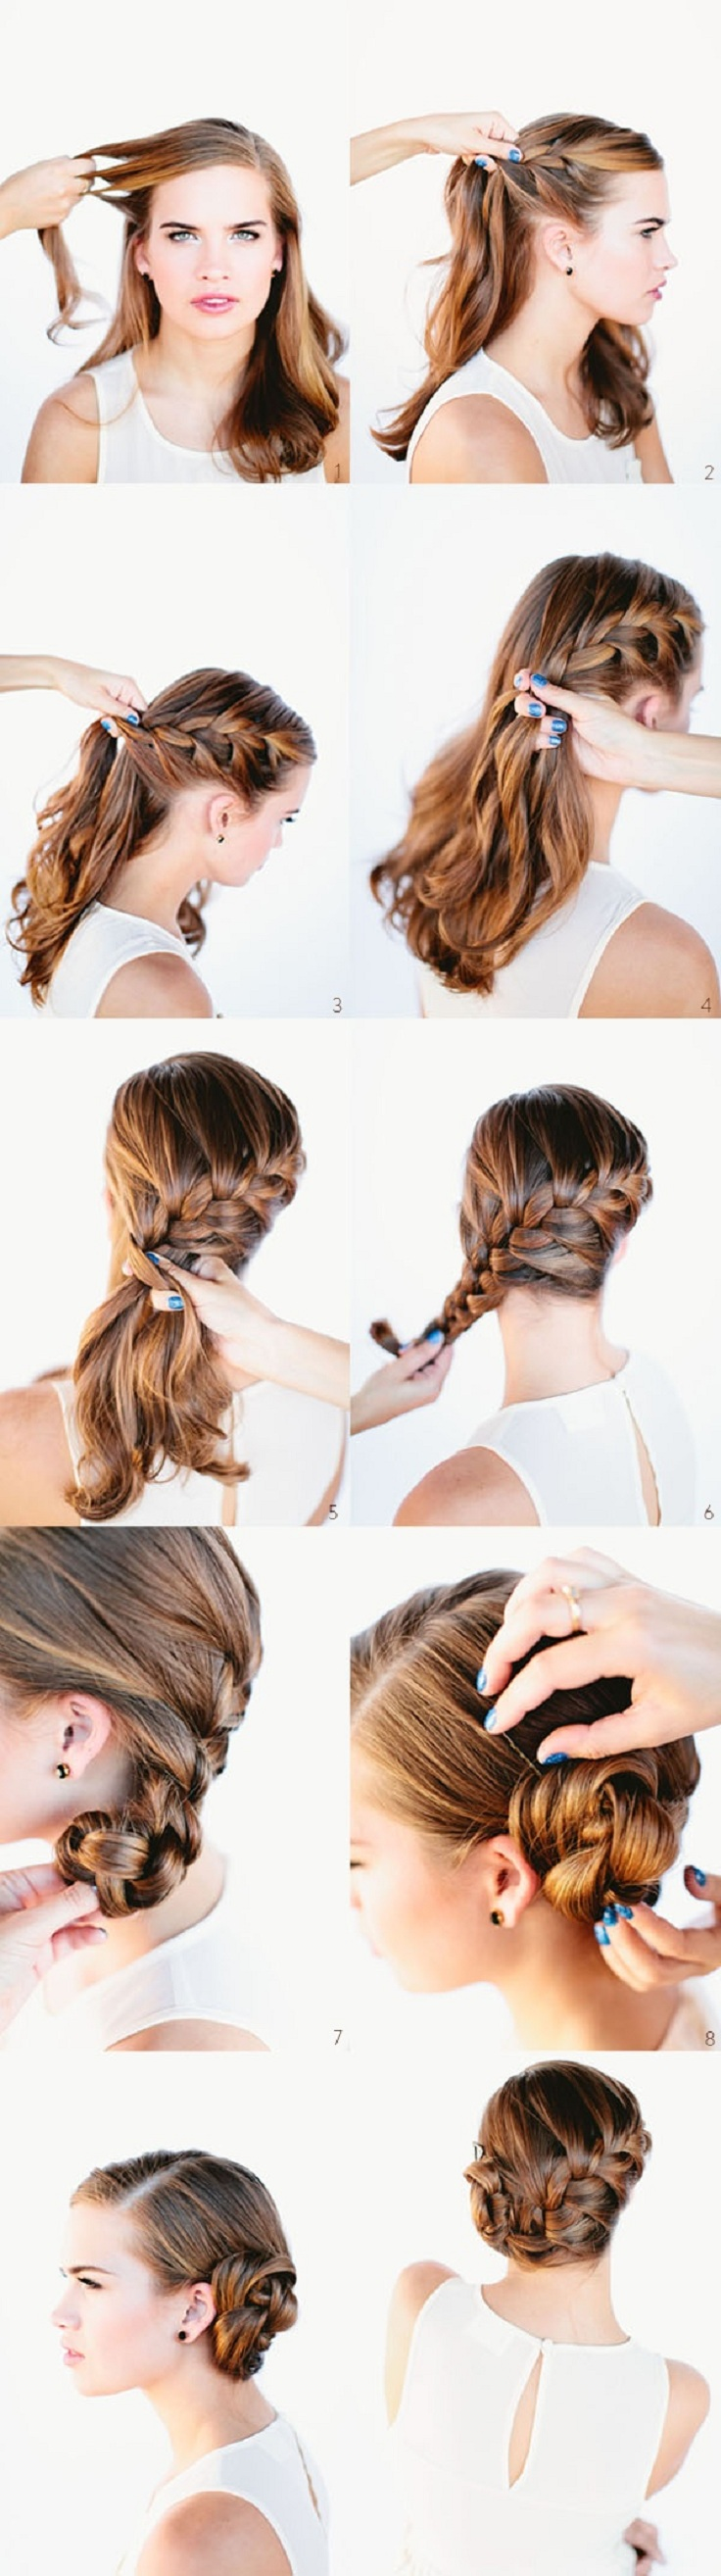 Pleasant 10 Braided Hairstyle Tutorials Crafthubs Short Hairstyles For Black Women Fulllsitofus